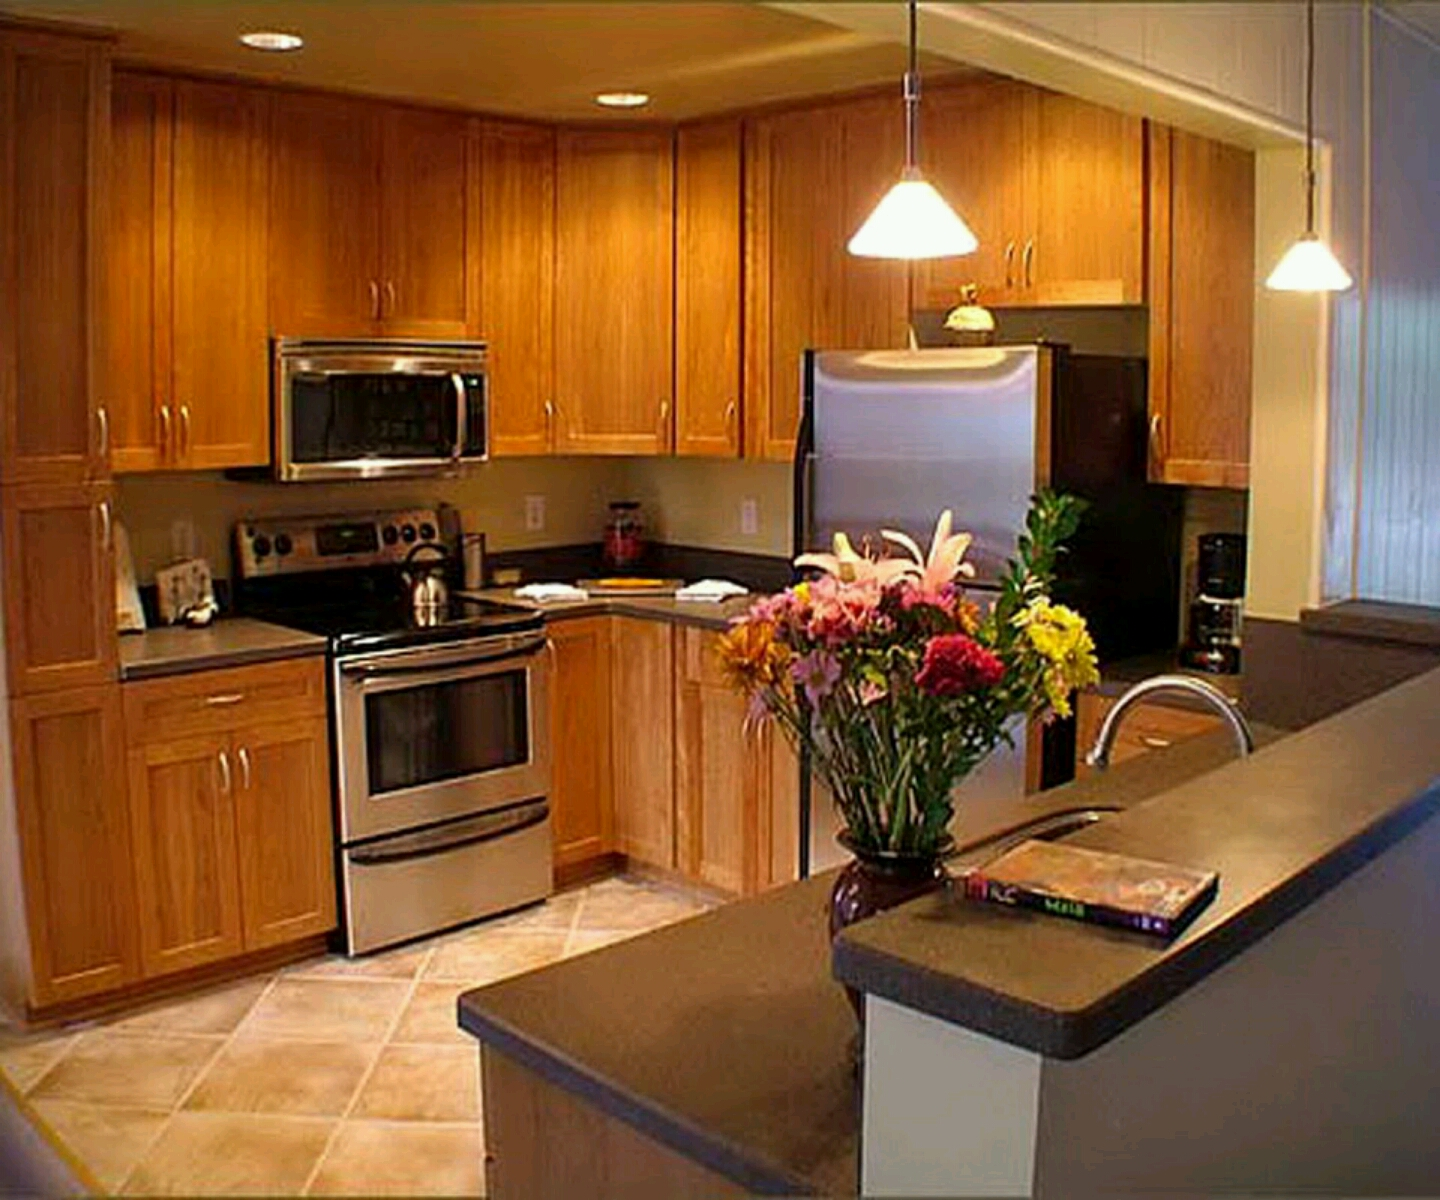 Modern wooden kitchen cabinets designs furniture gallery for Wood cabinets